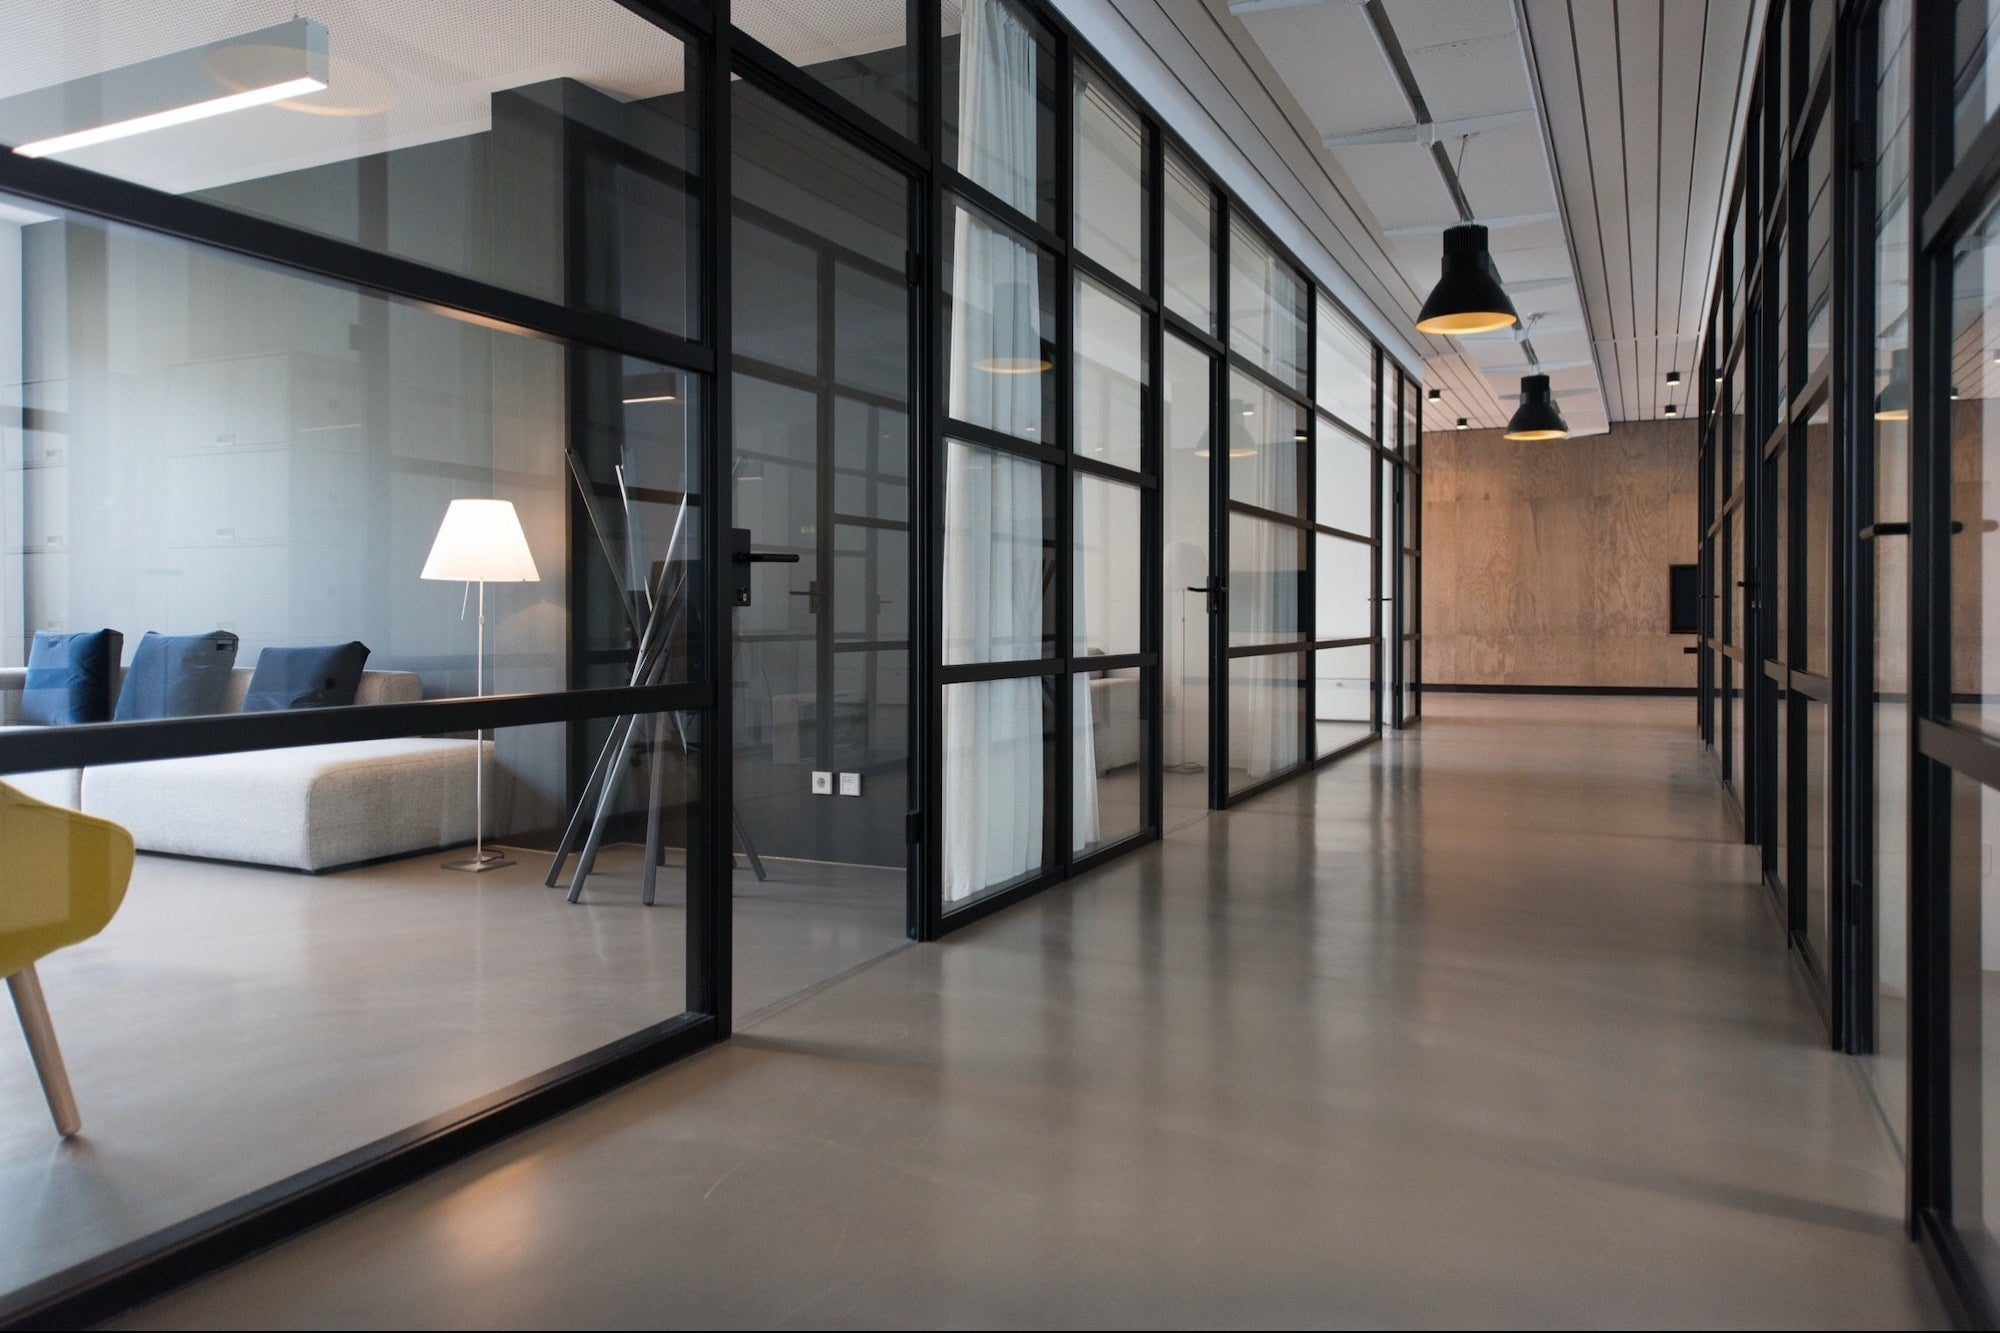 Make Your Office and Home More Presentable with These Lighting Options